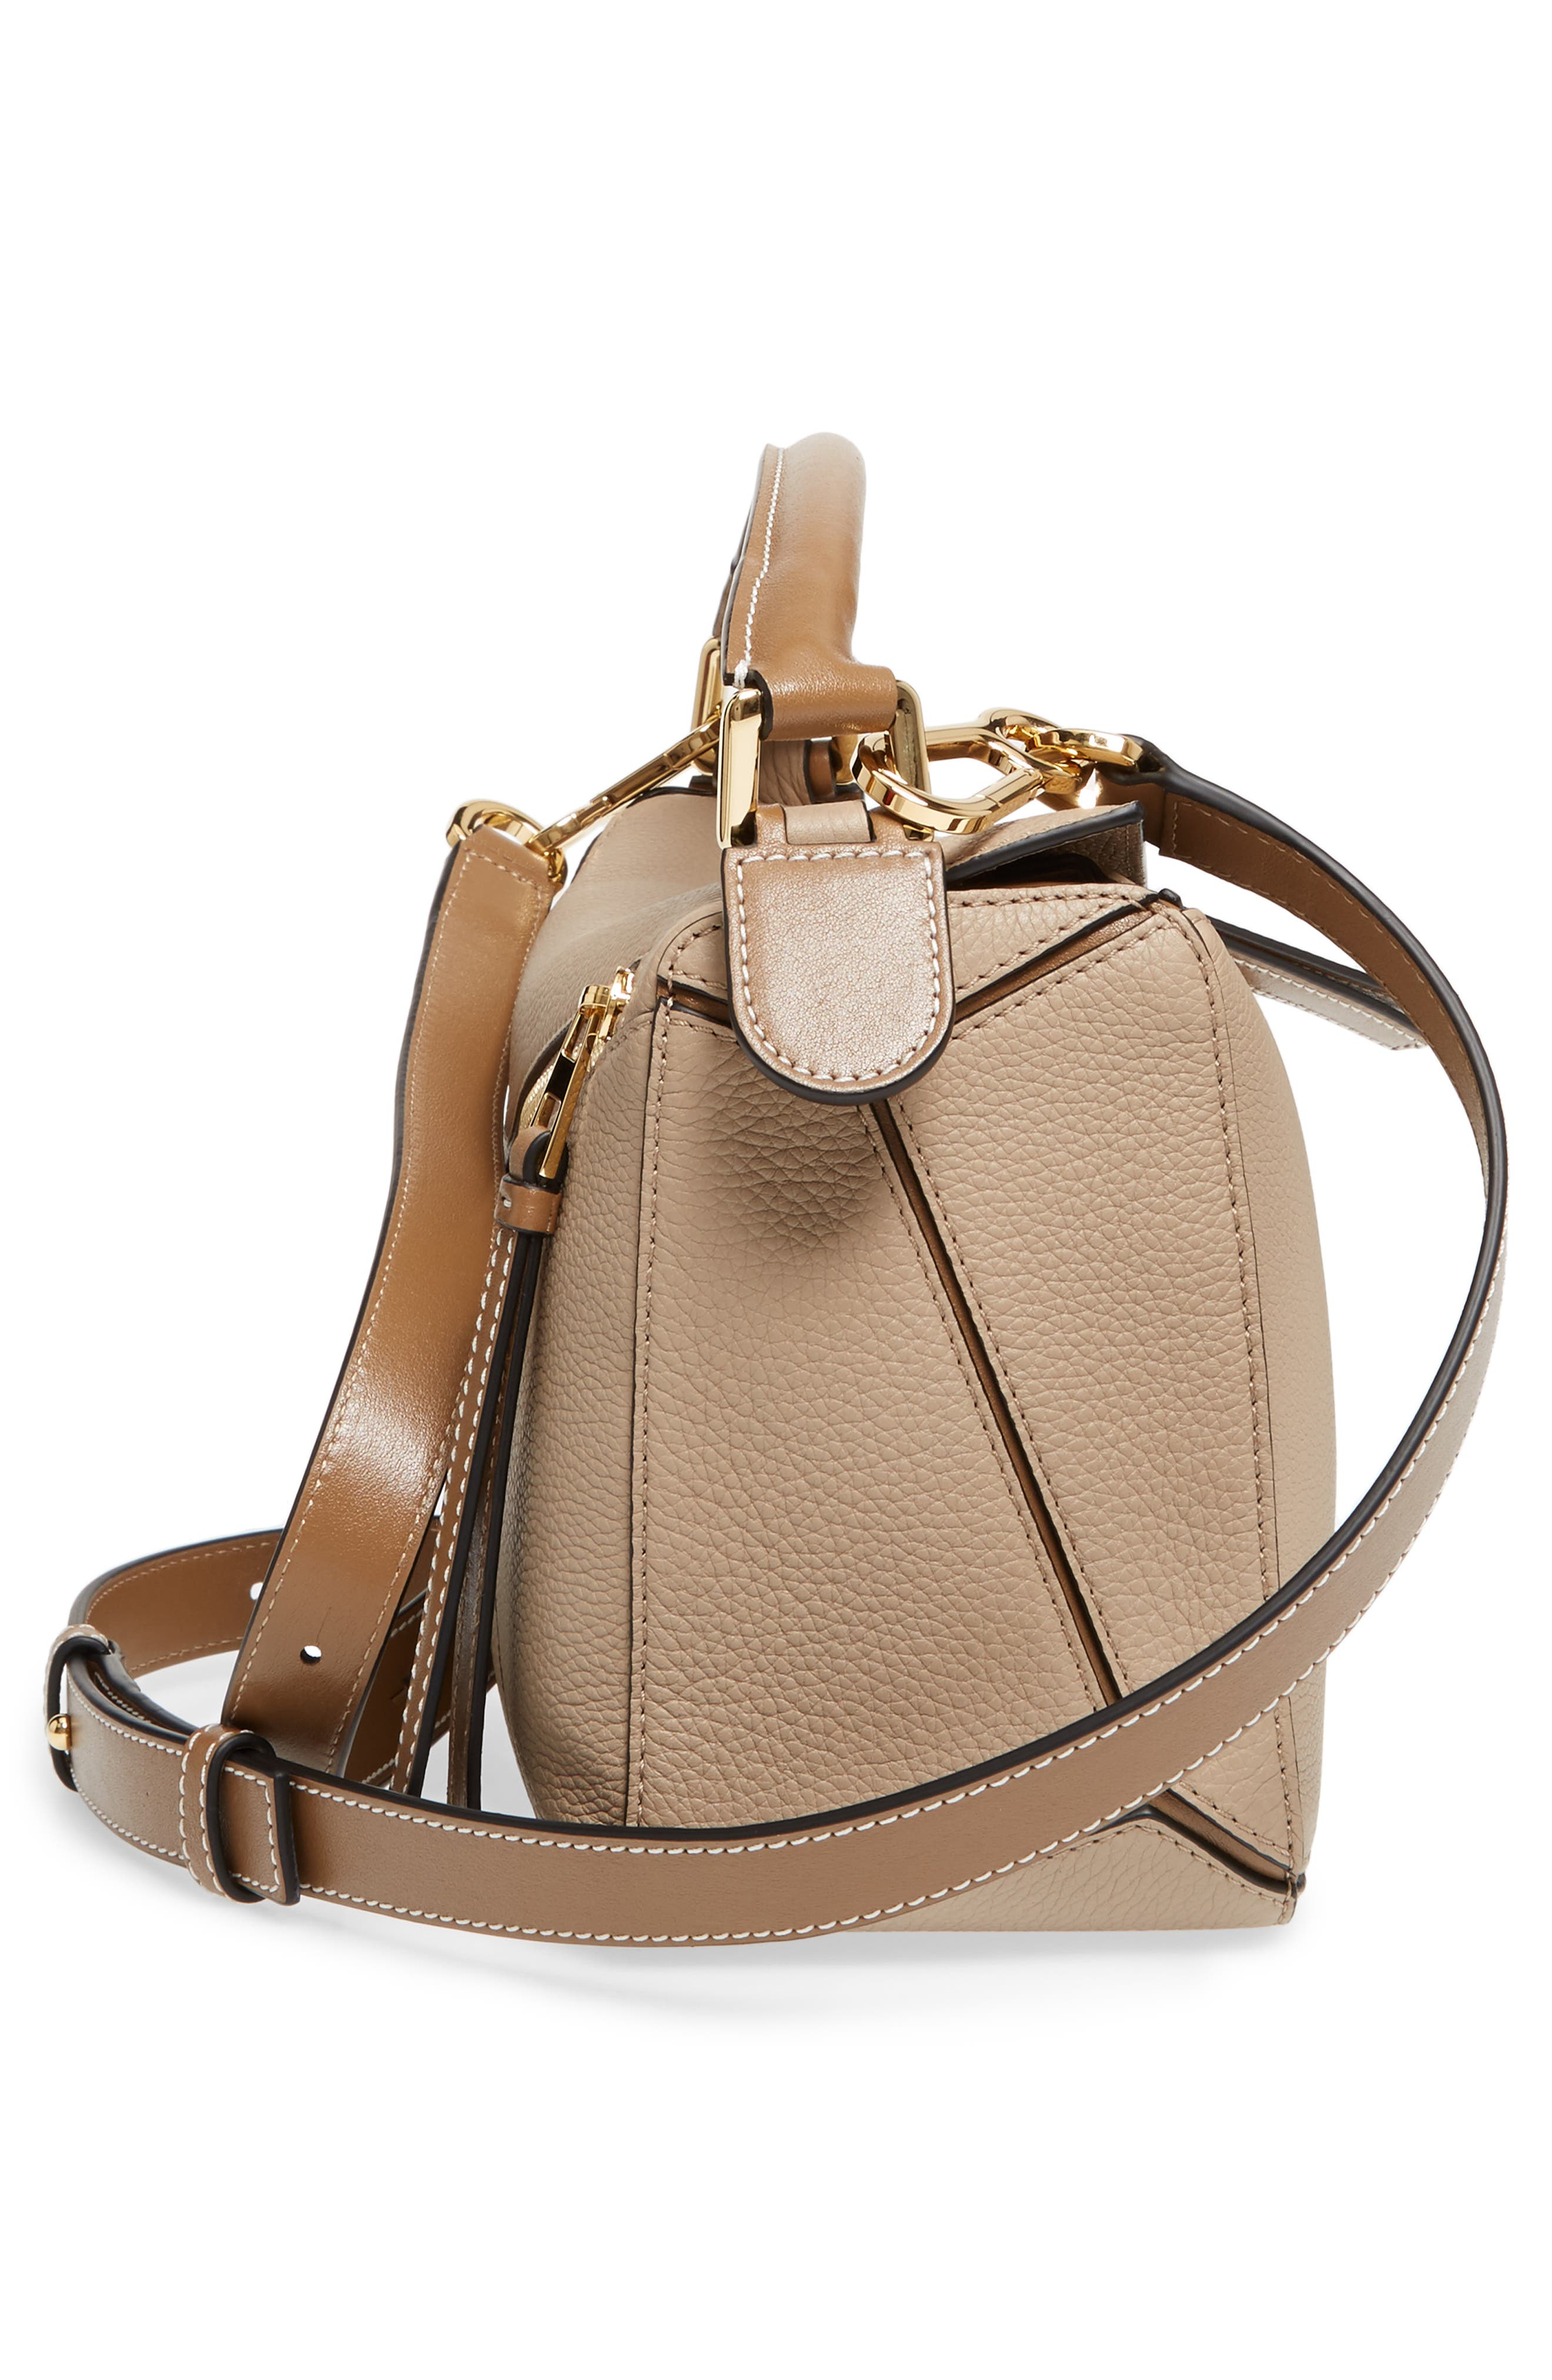 Small Puzzle Leather Bag,                             Alternate thumbnail 5, color,                             Sand/ Mink